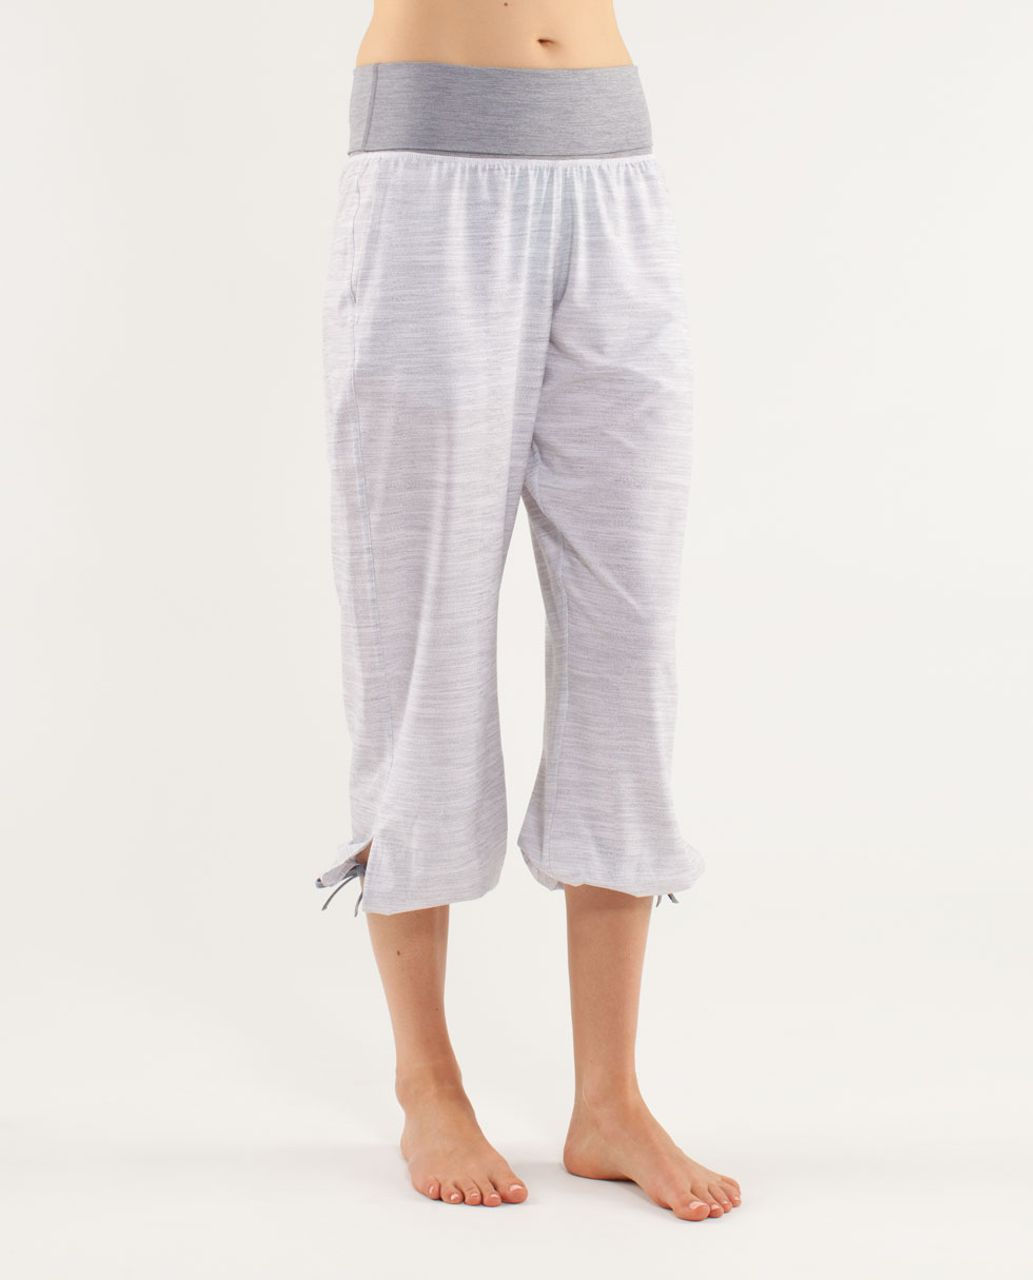 Lululemon Om Pant - Commuter Denim White / Fossil / Heathered Fossil